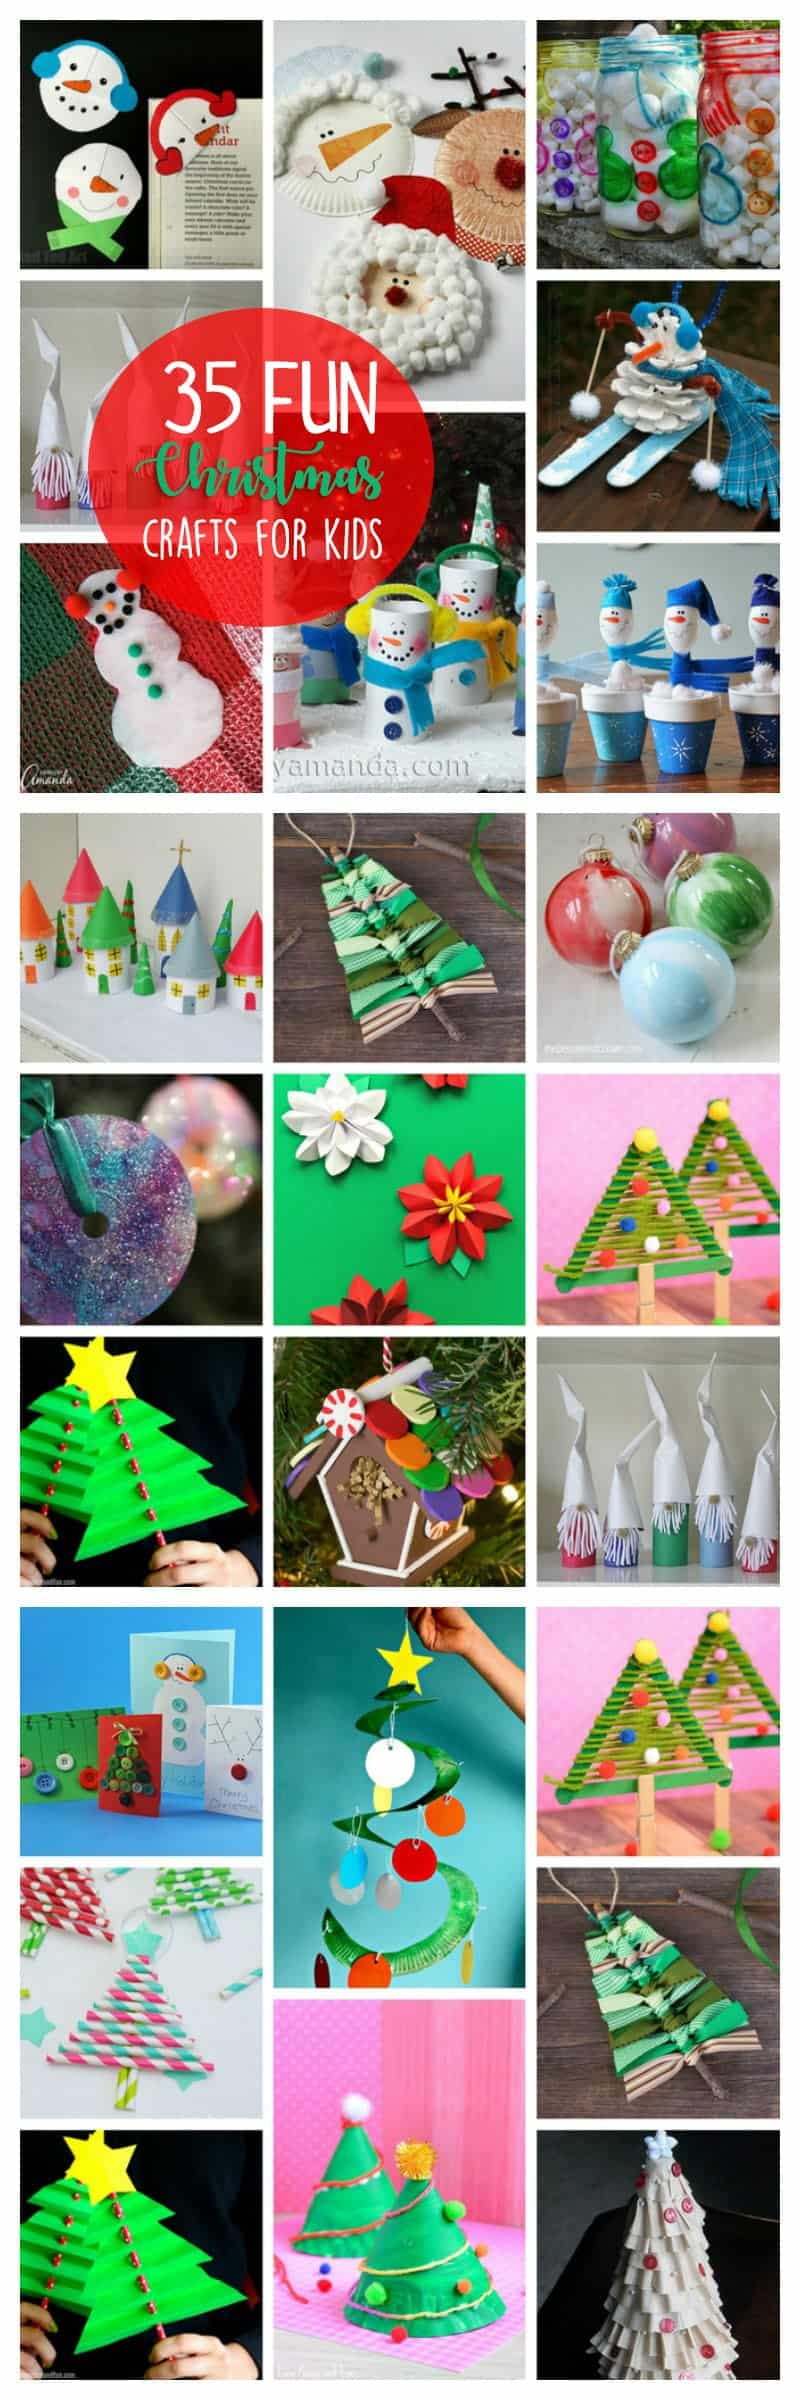 Christmas Crafts for Kids - 35 fun and easy holiday ideas